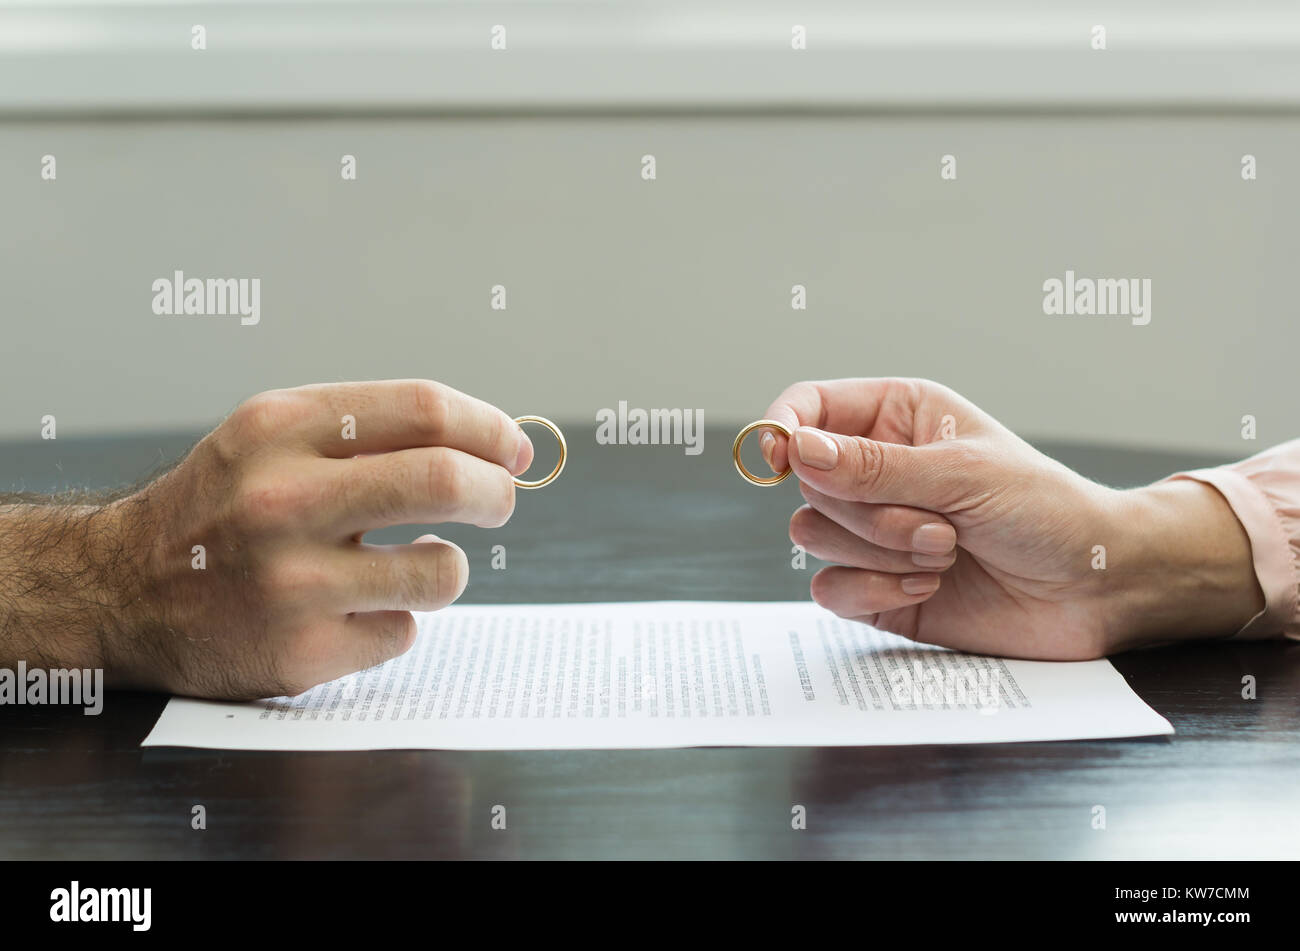 Great concept of divorce, end of relationship, hand of man and woman handing over alliances, divorce agreement. - Stock Image